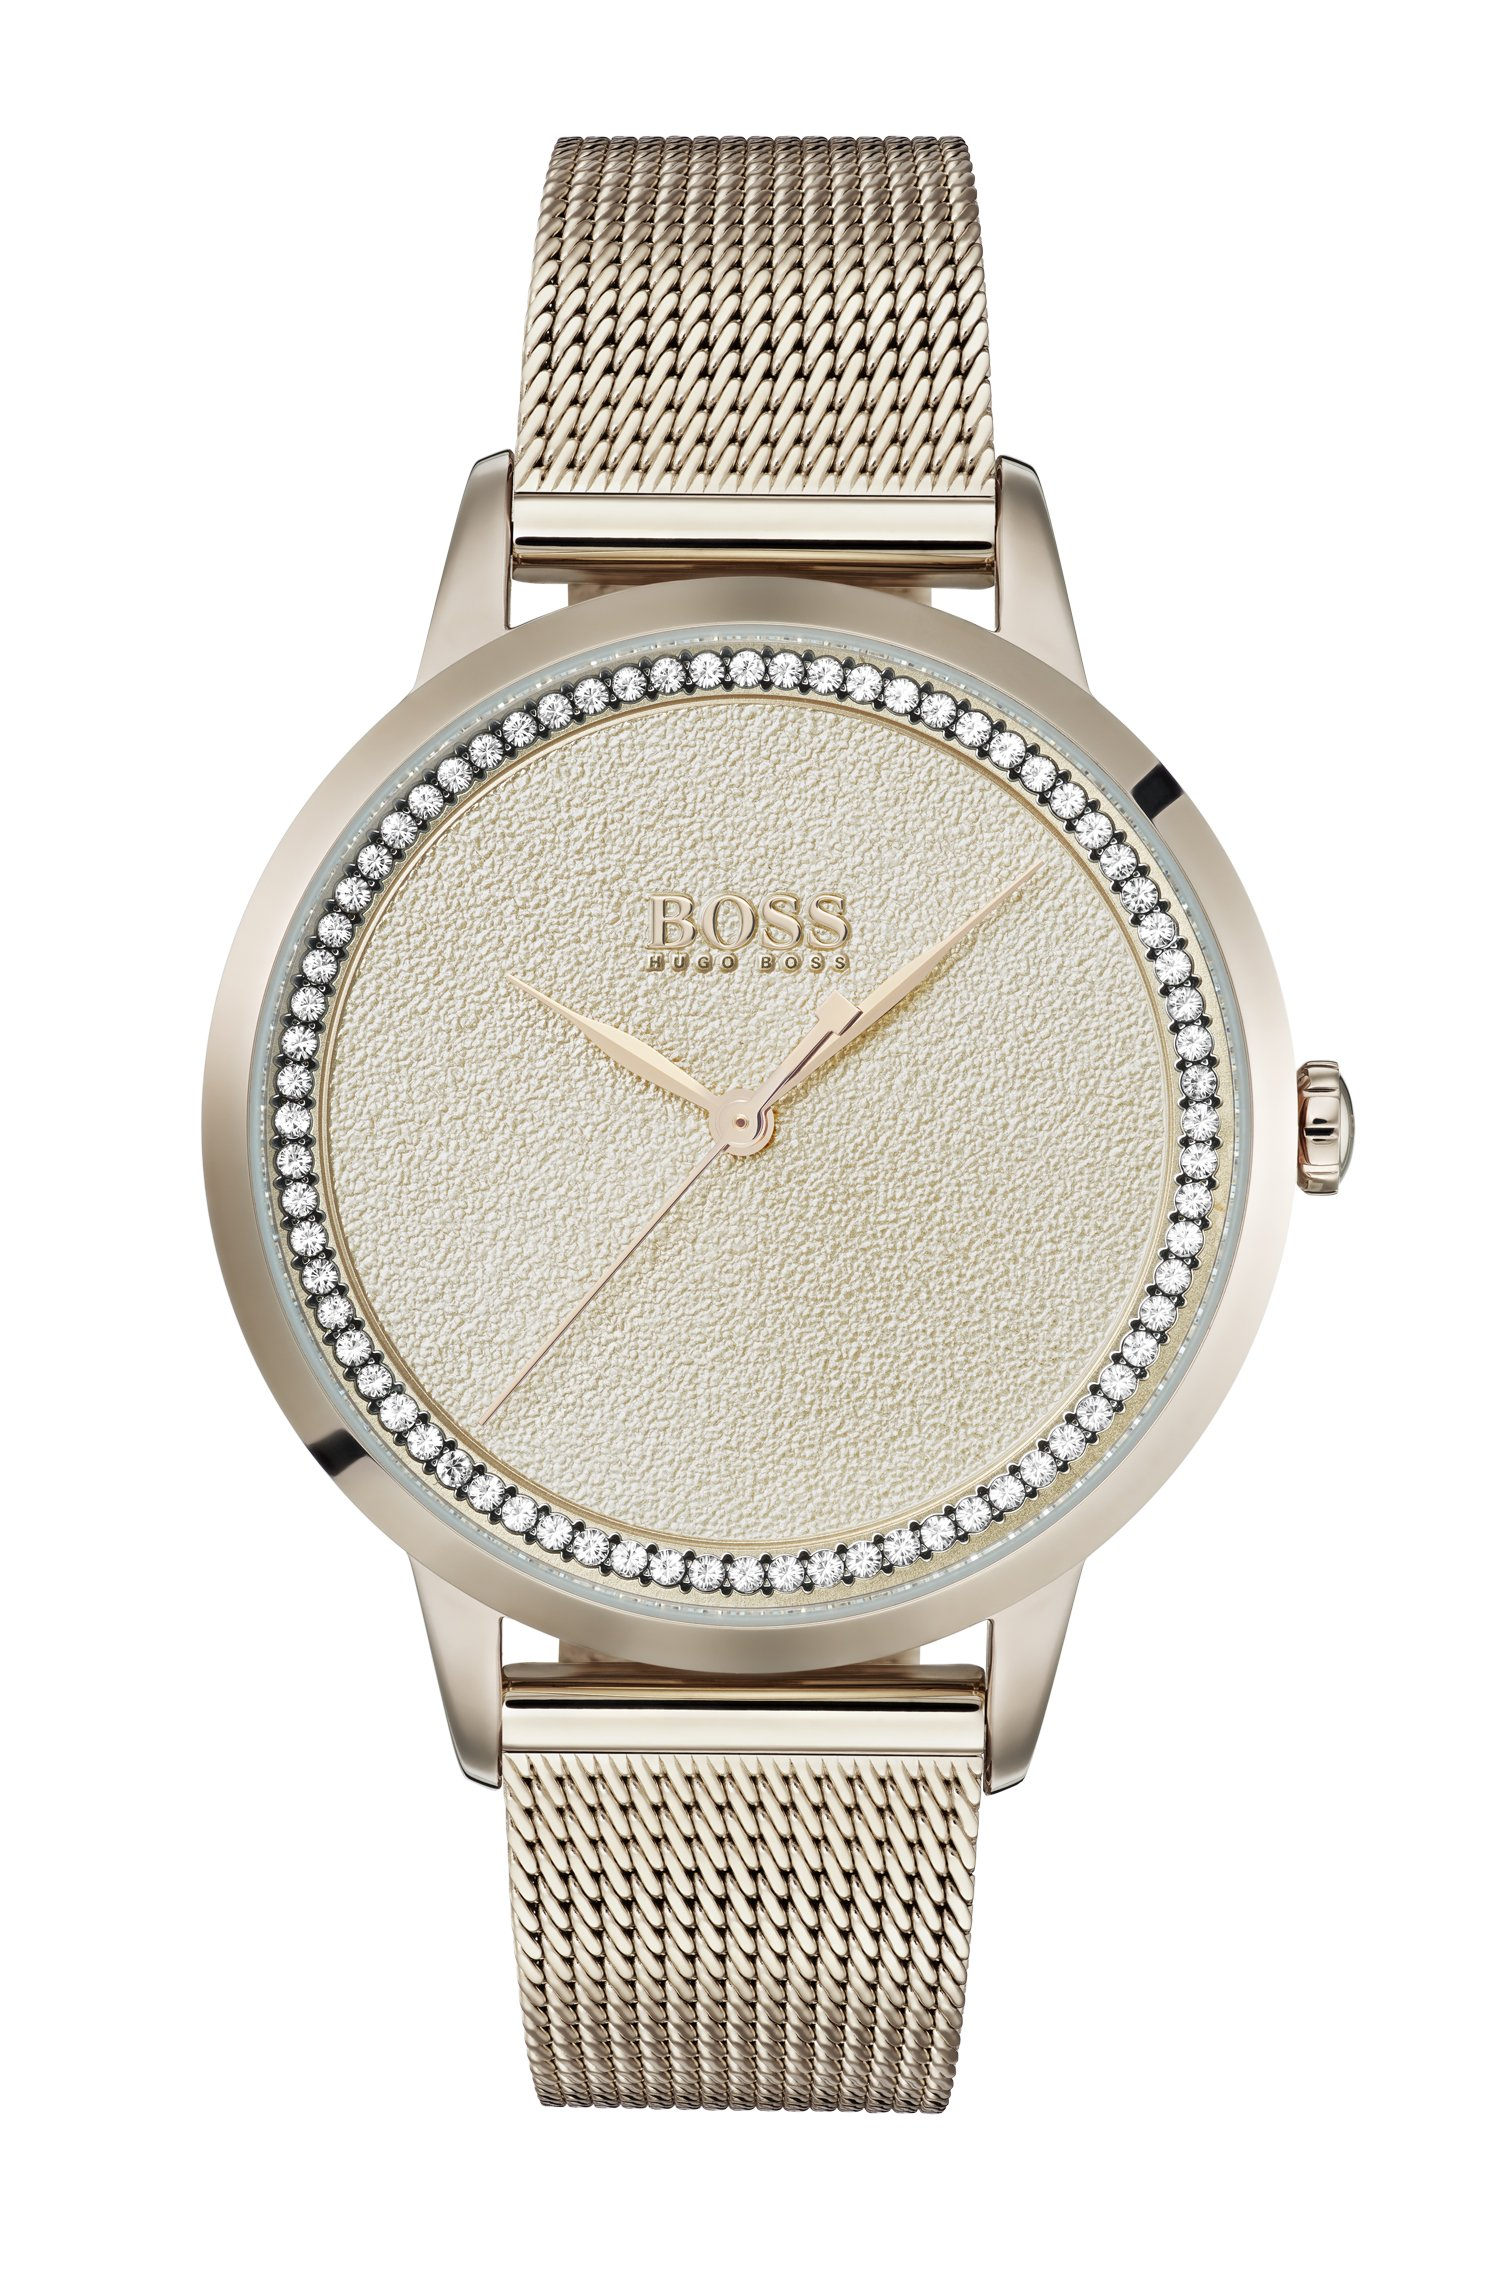 Carnation-gold-plated watch with textured dial, Gold